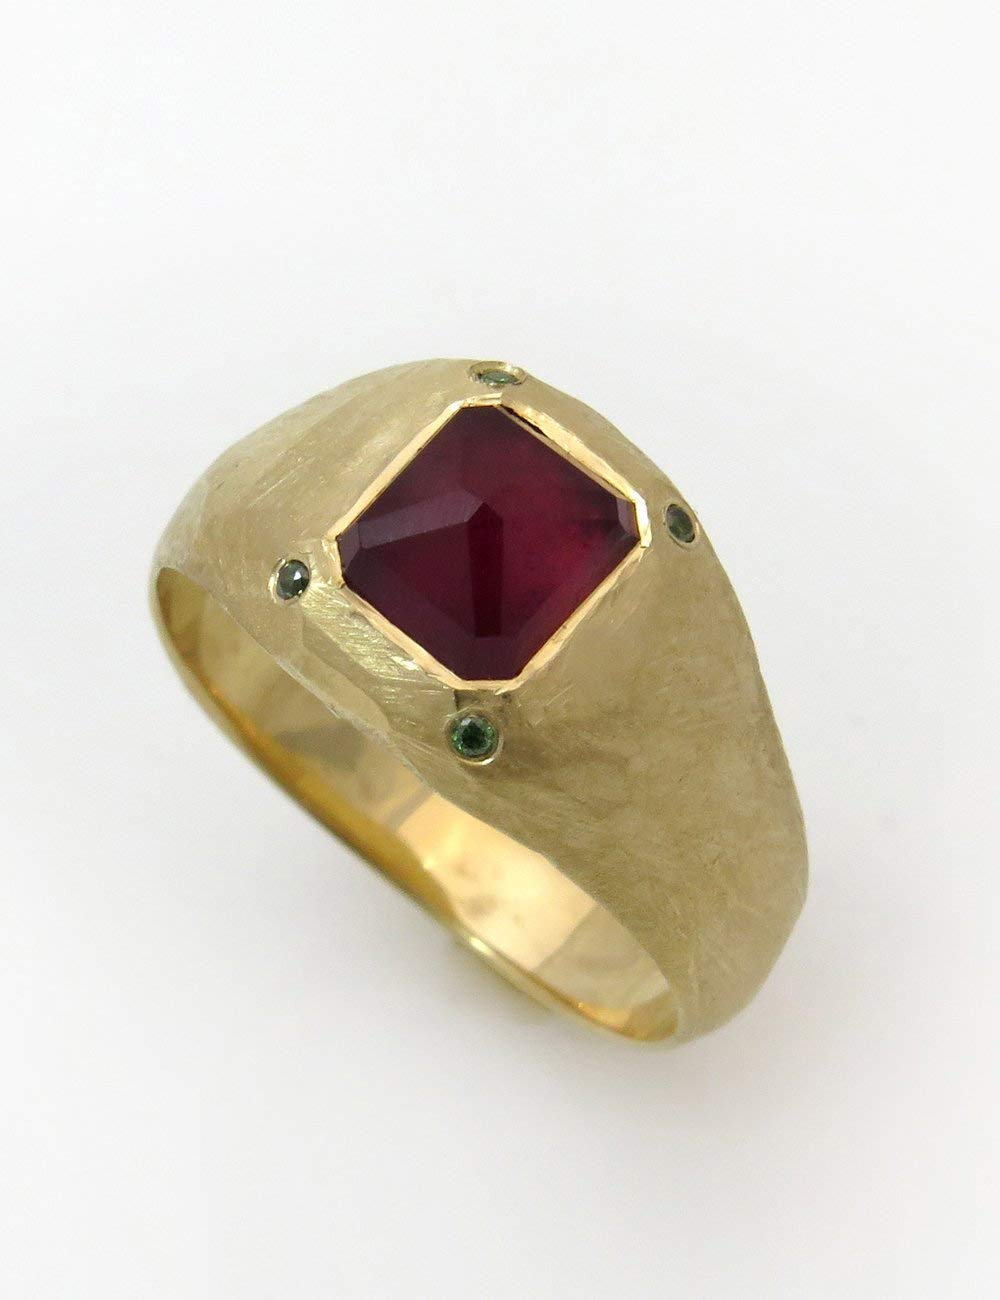 Handmade Cocktail Statement Signet Multistone Ring Ruby and Diamond Ring Rose or White Gold Made of Solid 18K Yellow